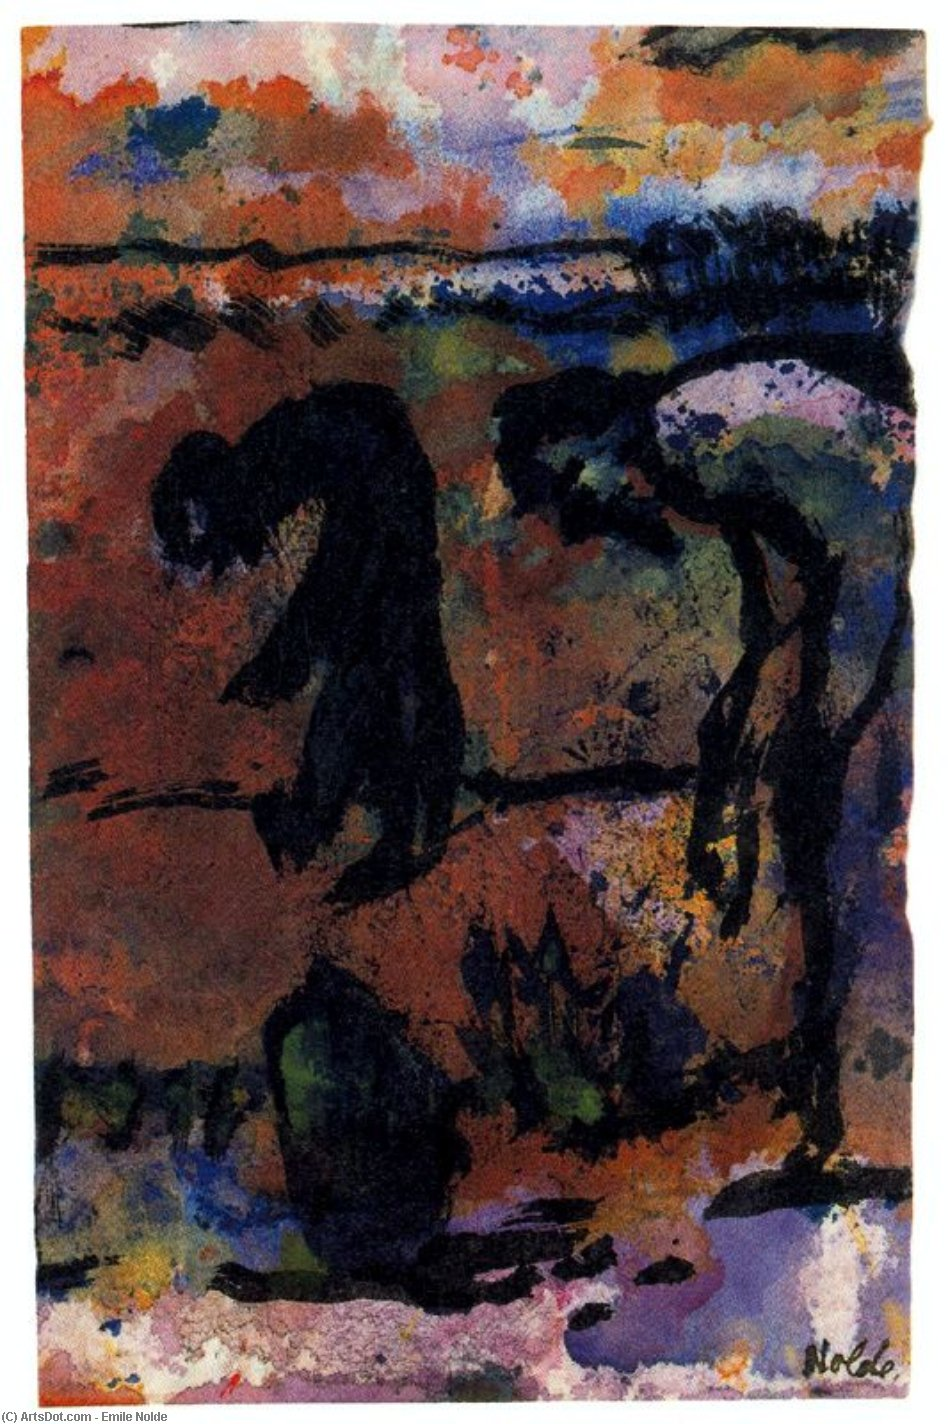 Figuras Inclinado de Emile Nolde (1867-1956, Germany)